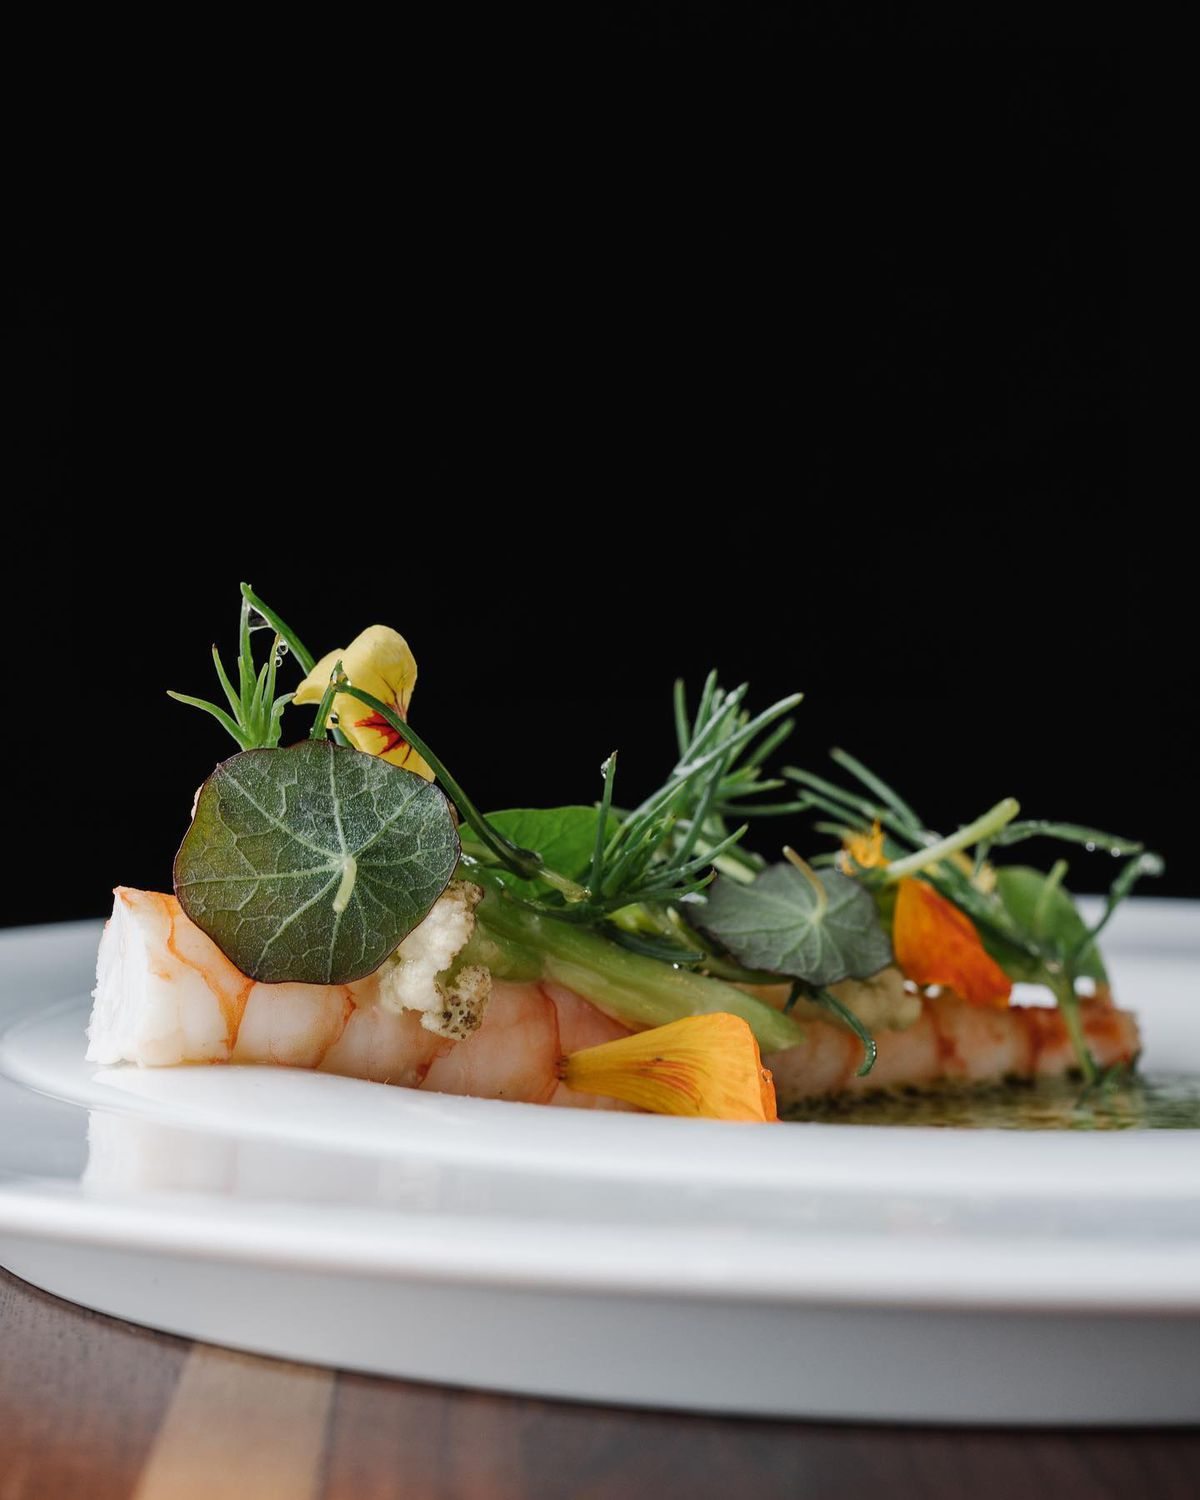 A plate of two poached shrimp topped with herbs and edible flowers